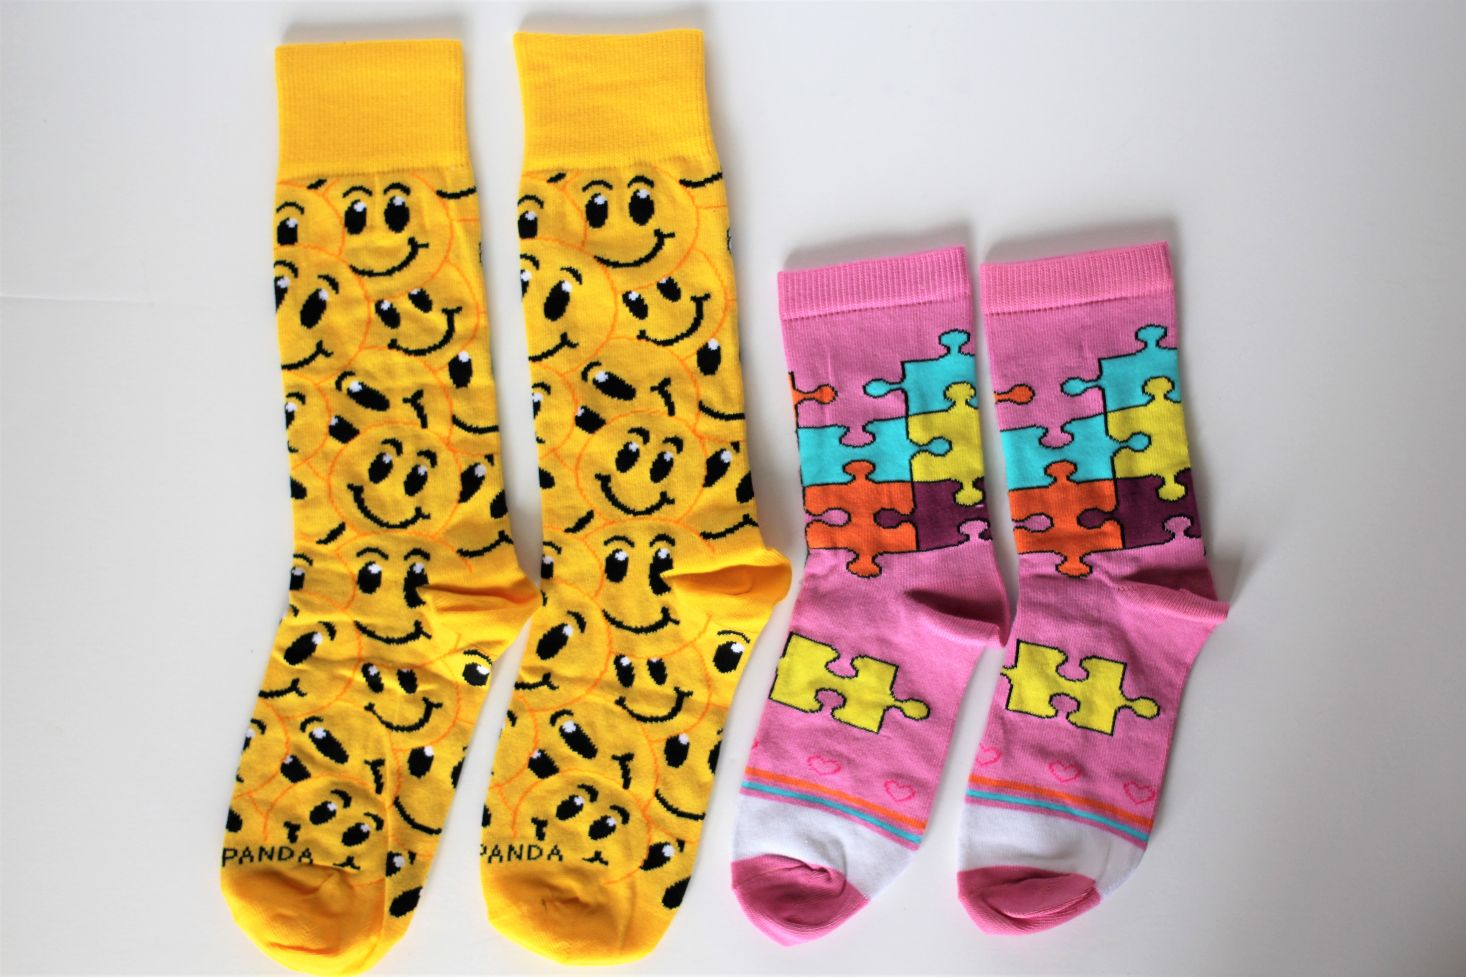 SOCKPANDA-APRIL-2017-04socks.jpg